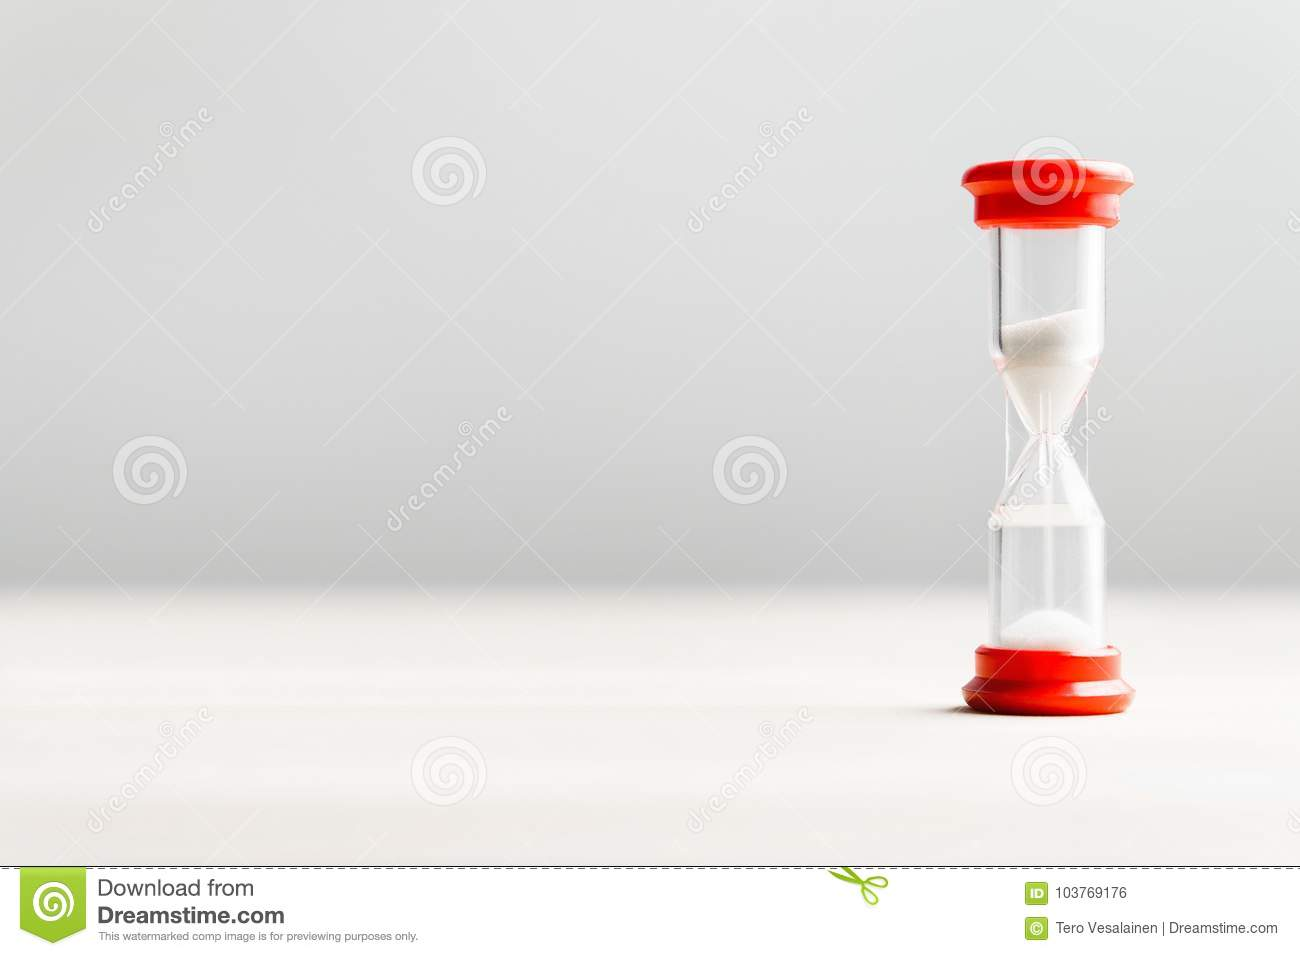 Sand in hourglass. Time passing concept.